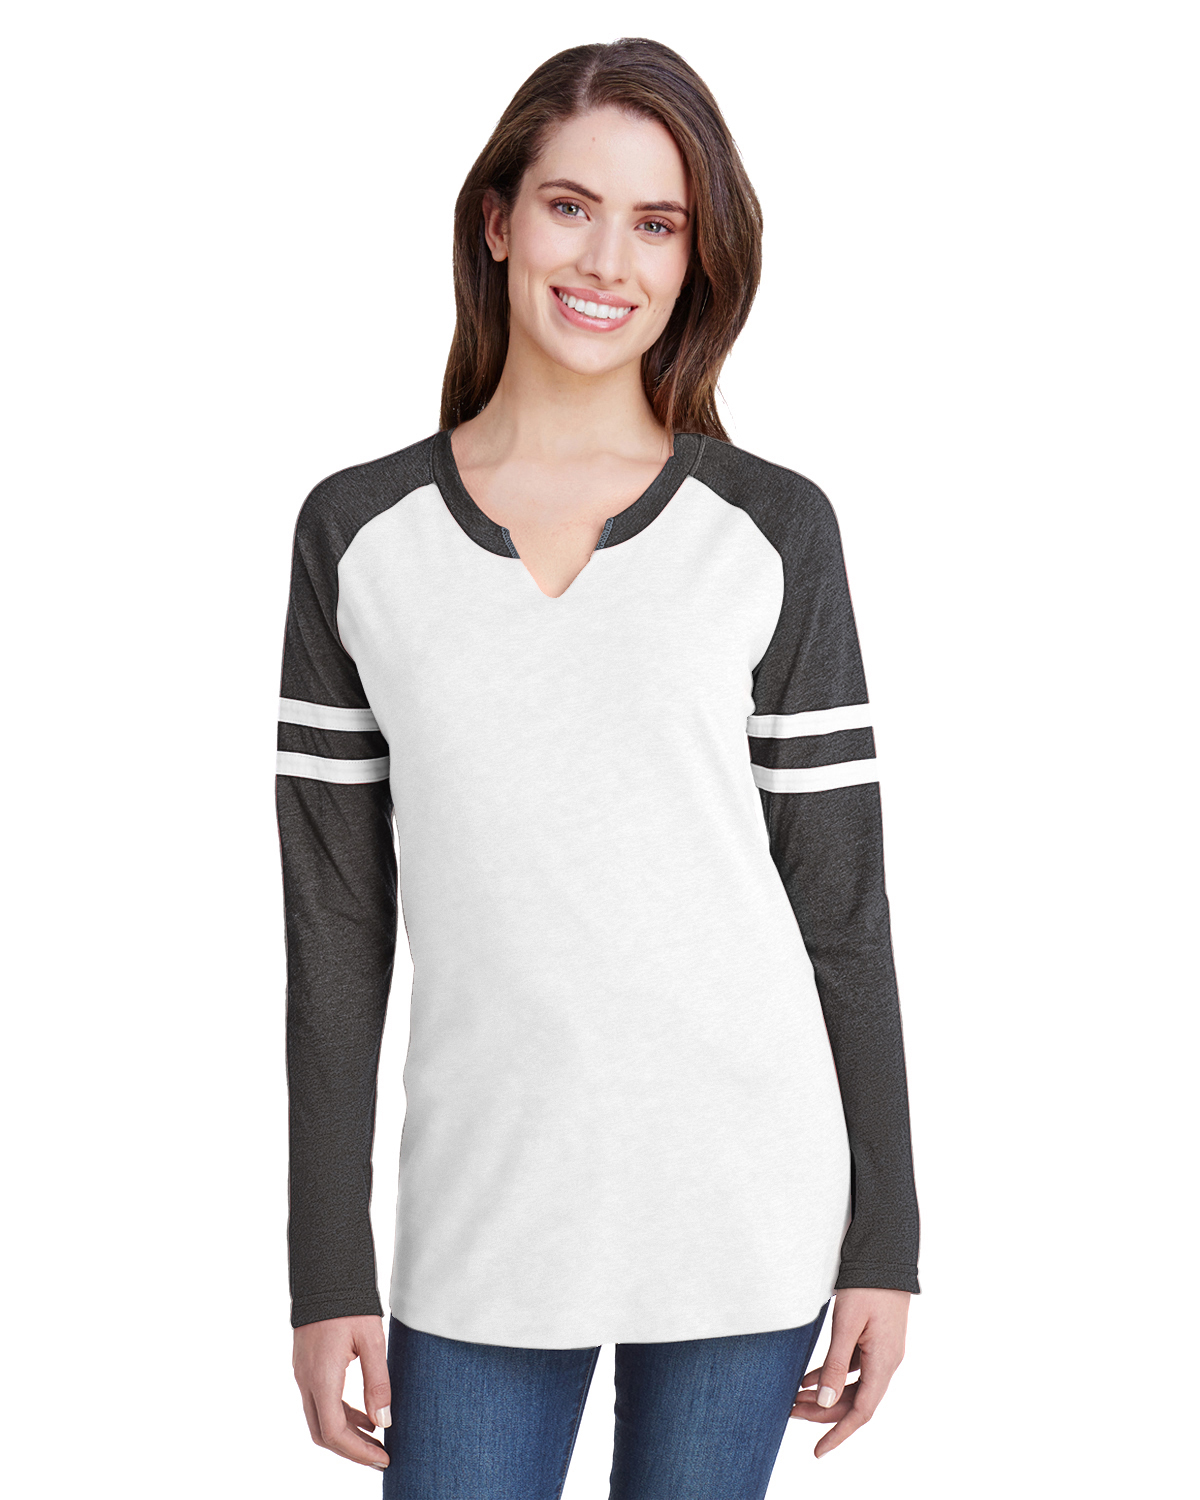 LAT 3534 - Women's Fine Jersey Mash Up Long Sleeve T-Shirt